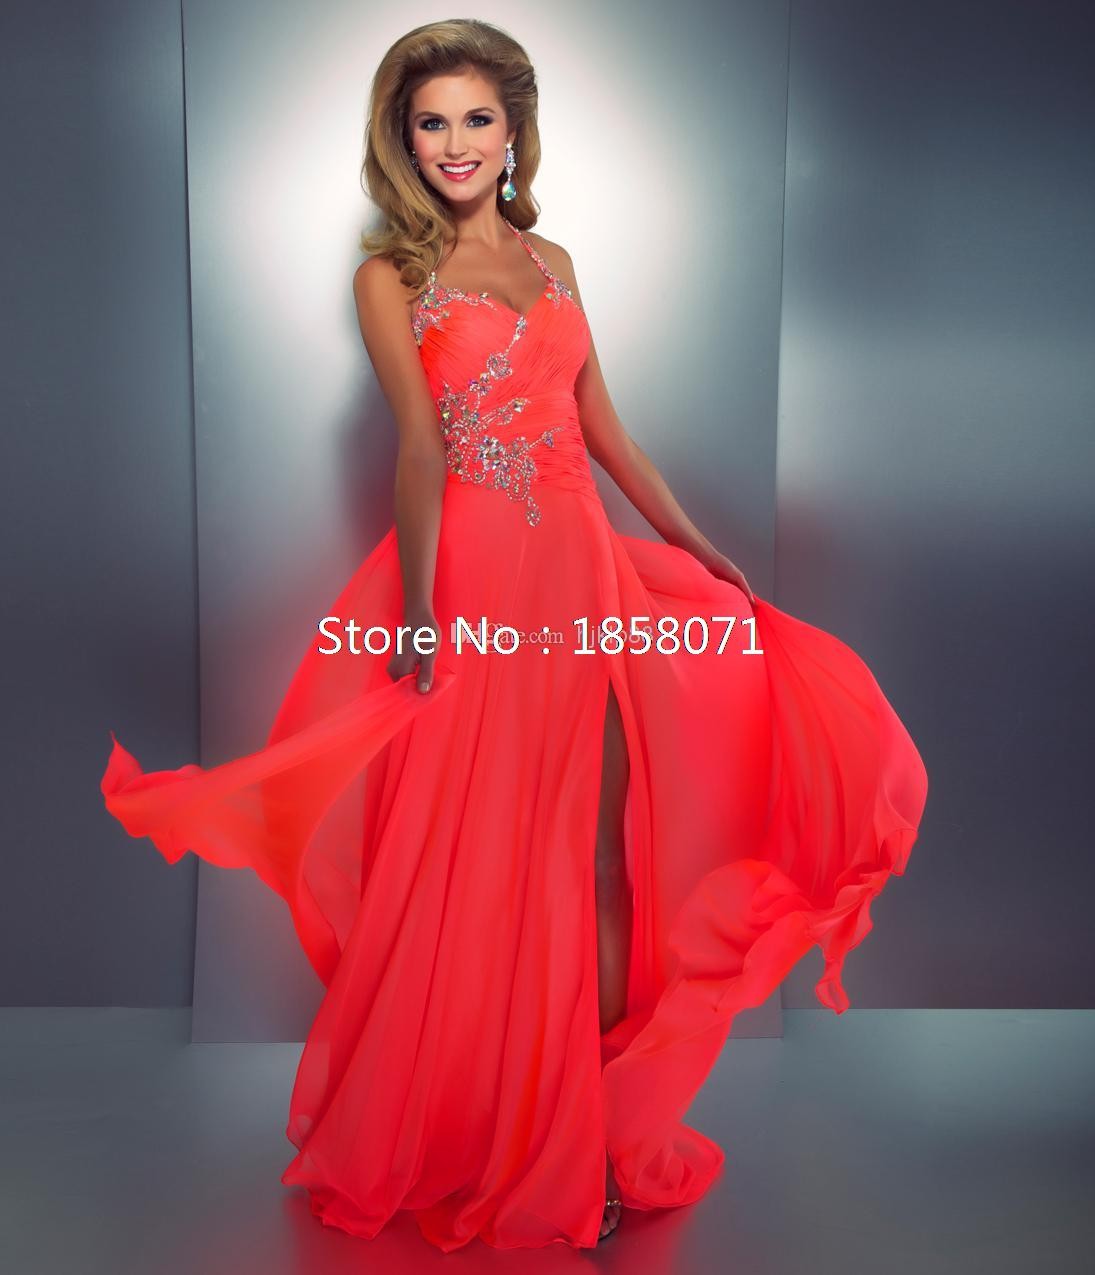 Neon Pink Prom Dress - Cocktail Dresses 2016